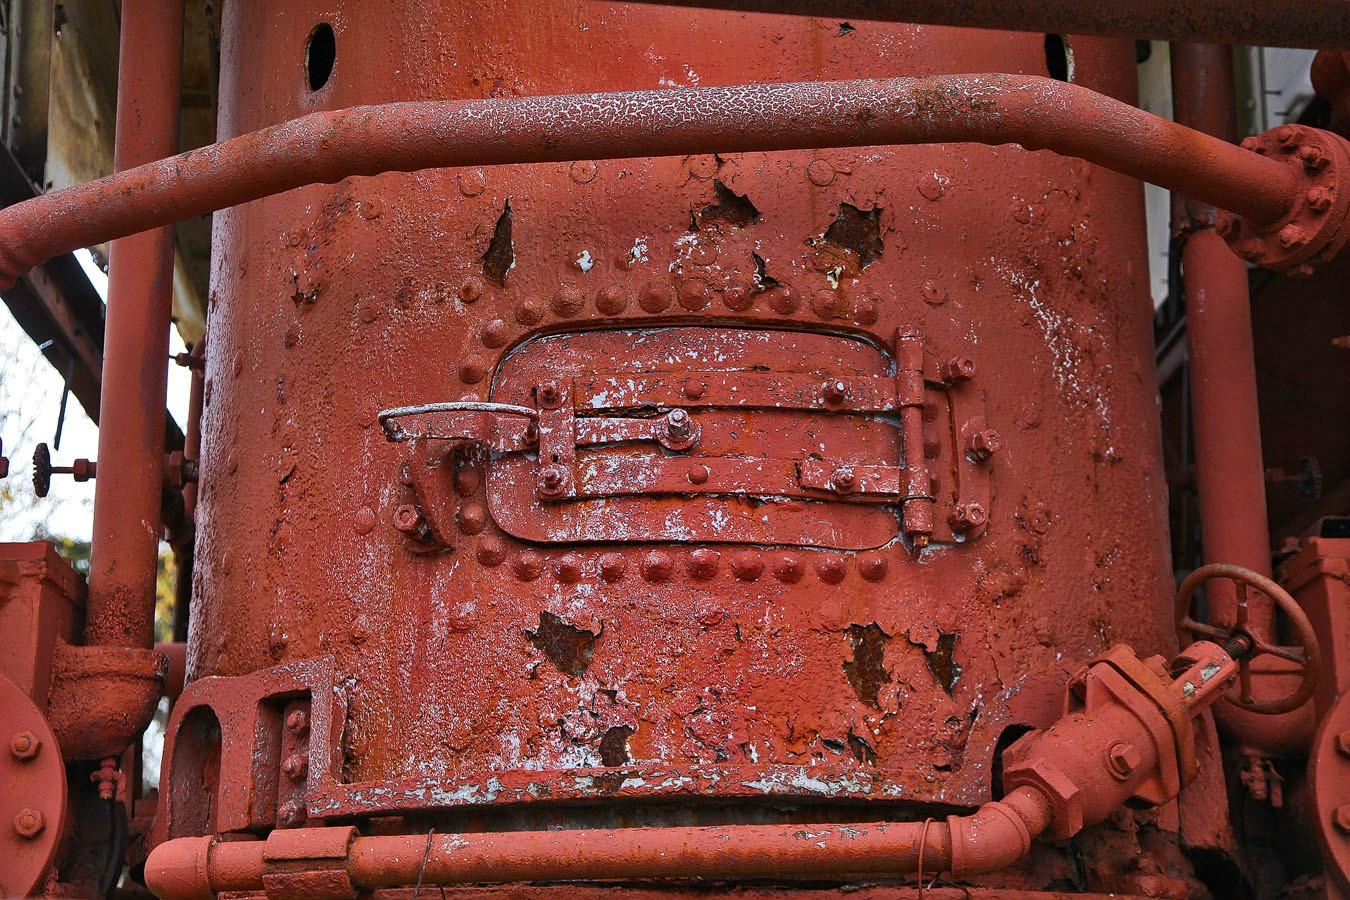 skidder boiler img aw author sava gregory and ver verena